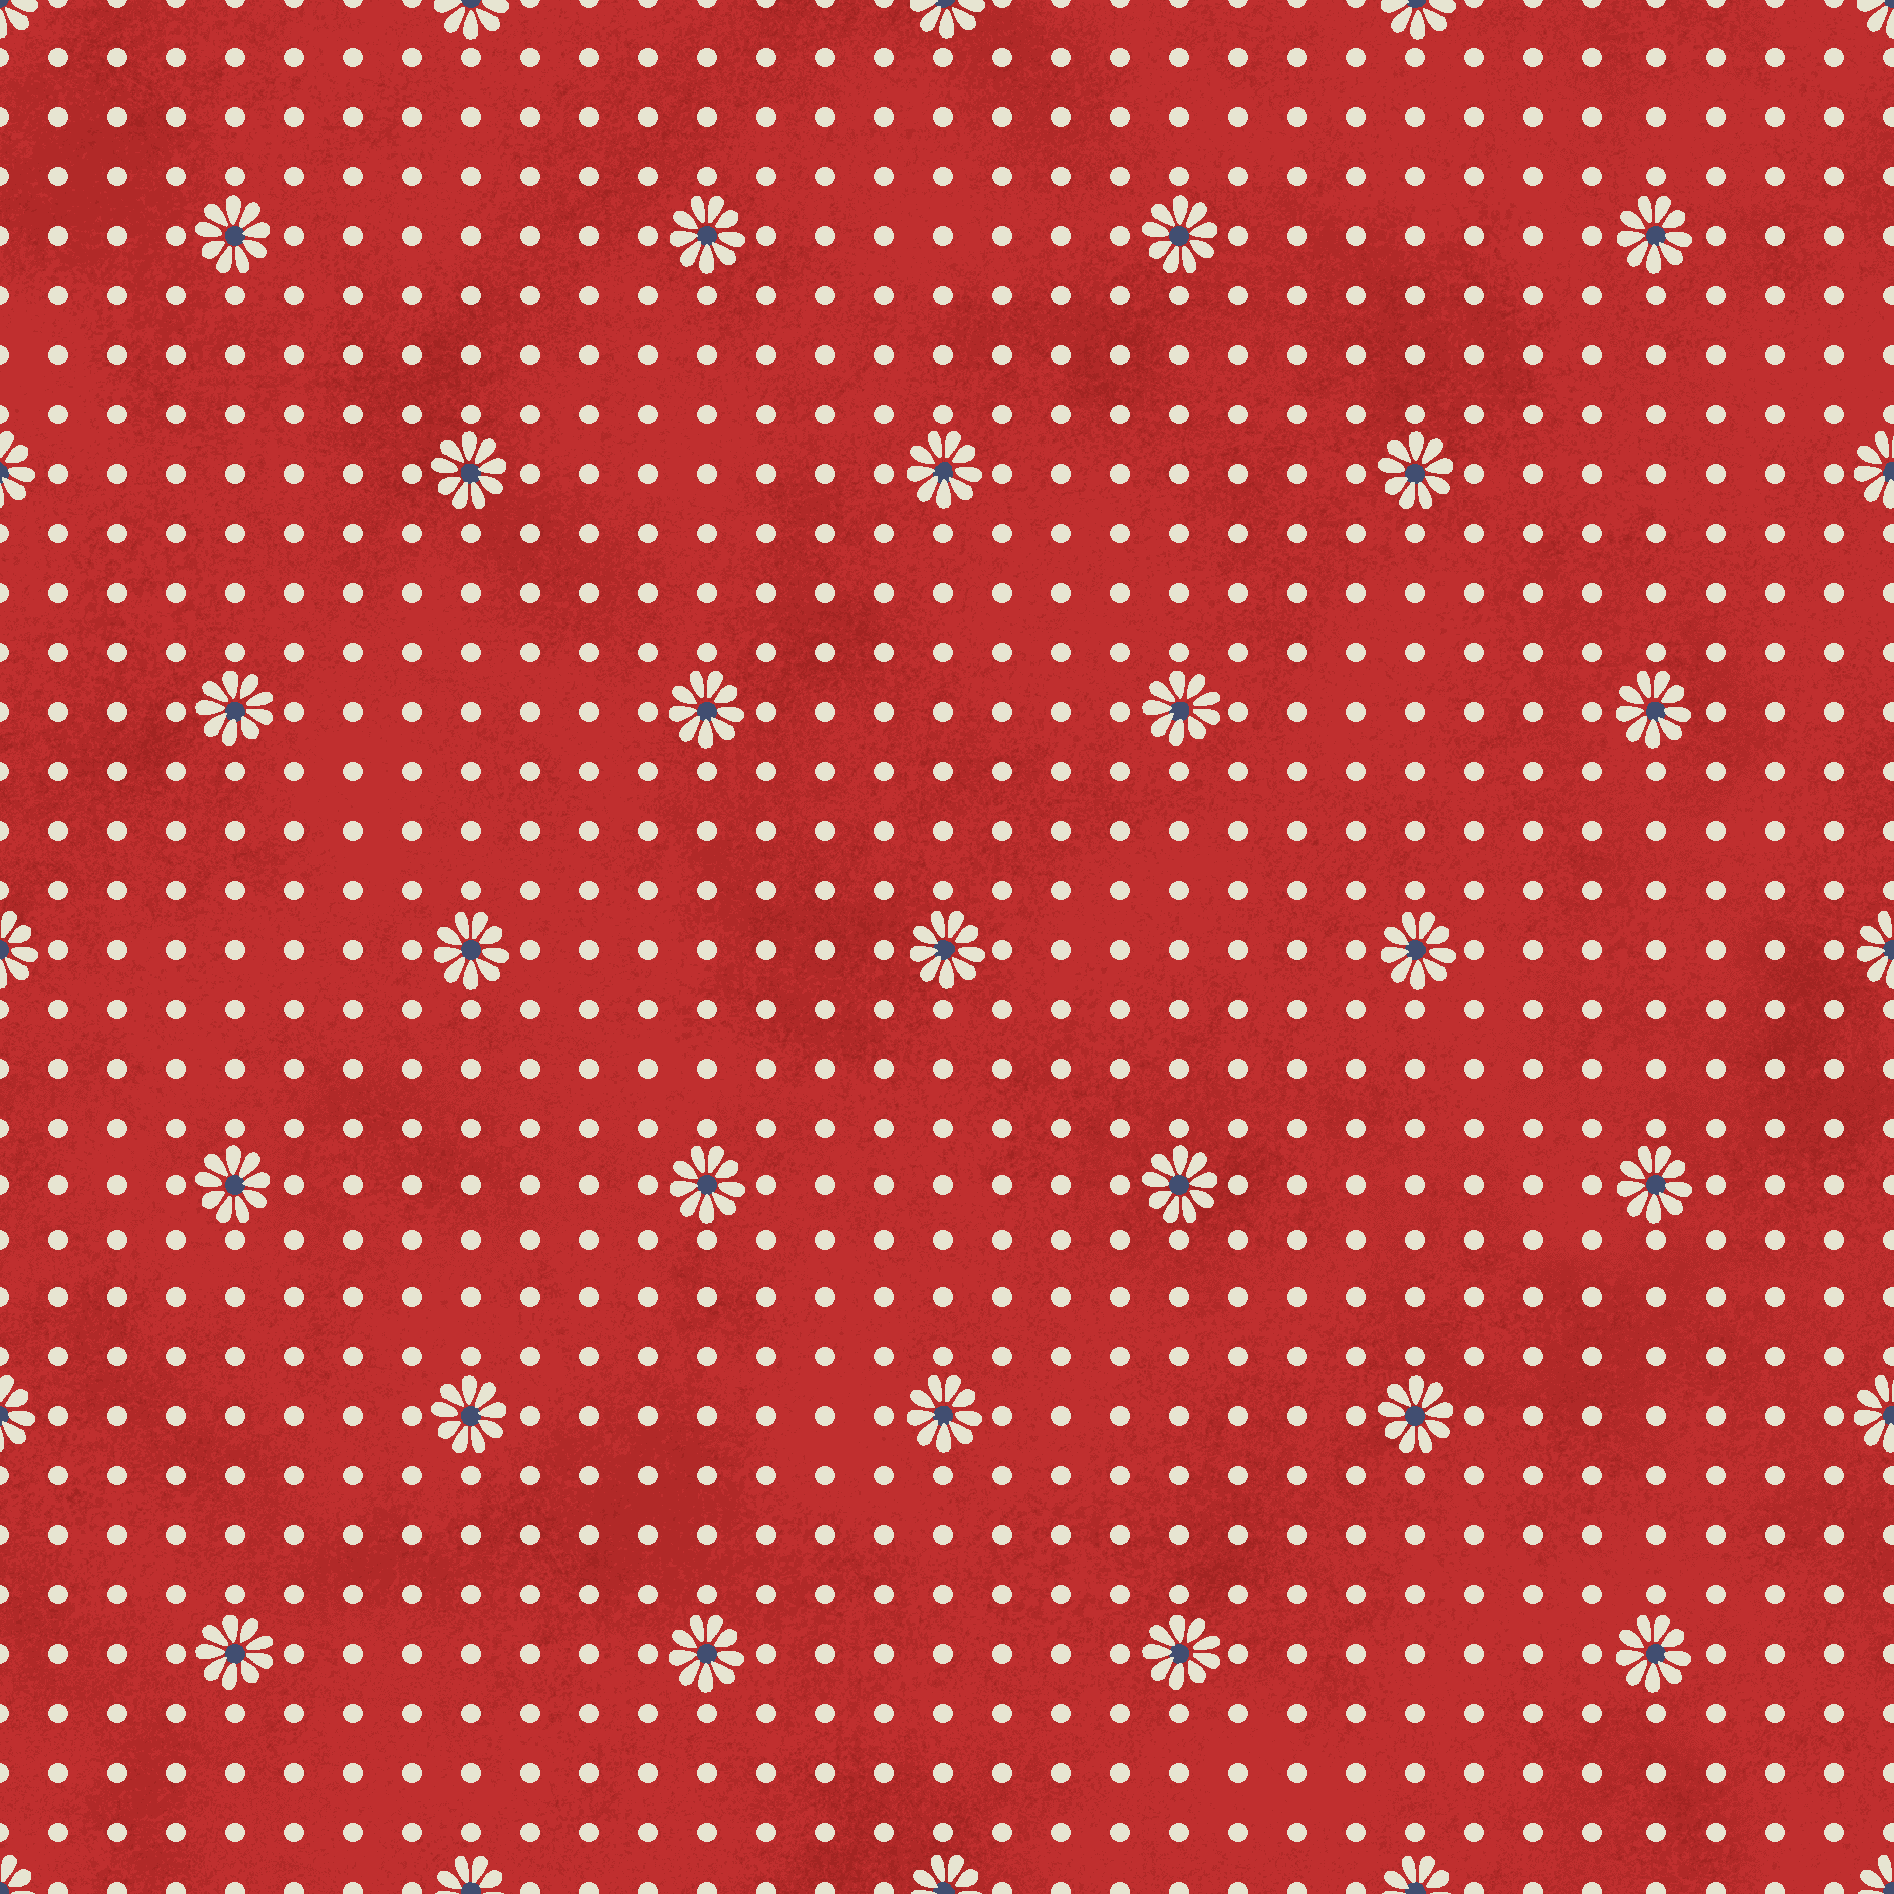 """RTC Patriotic Fabrics 100% Cotton, Daisy Dot Red, 44"""" Wide, 140 Gsm, Quilt, Crafts By The Yard"""